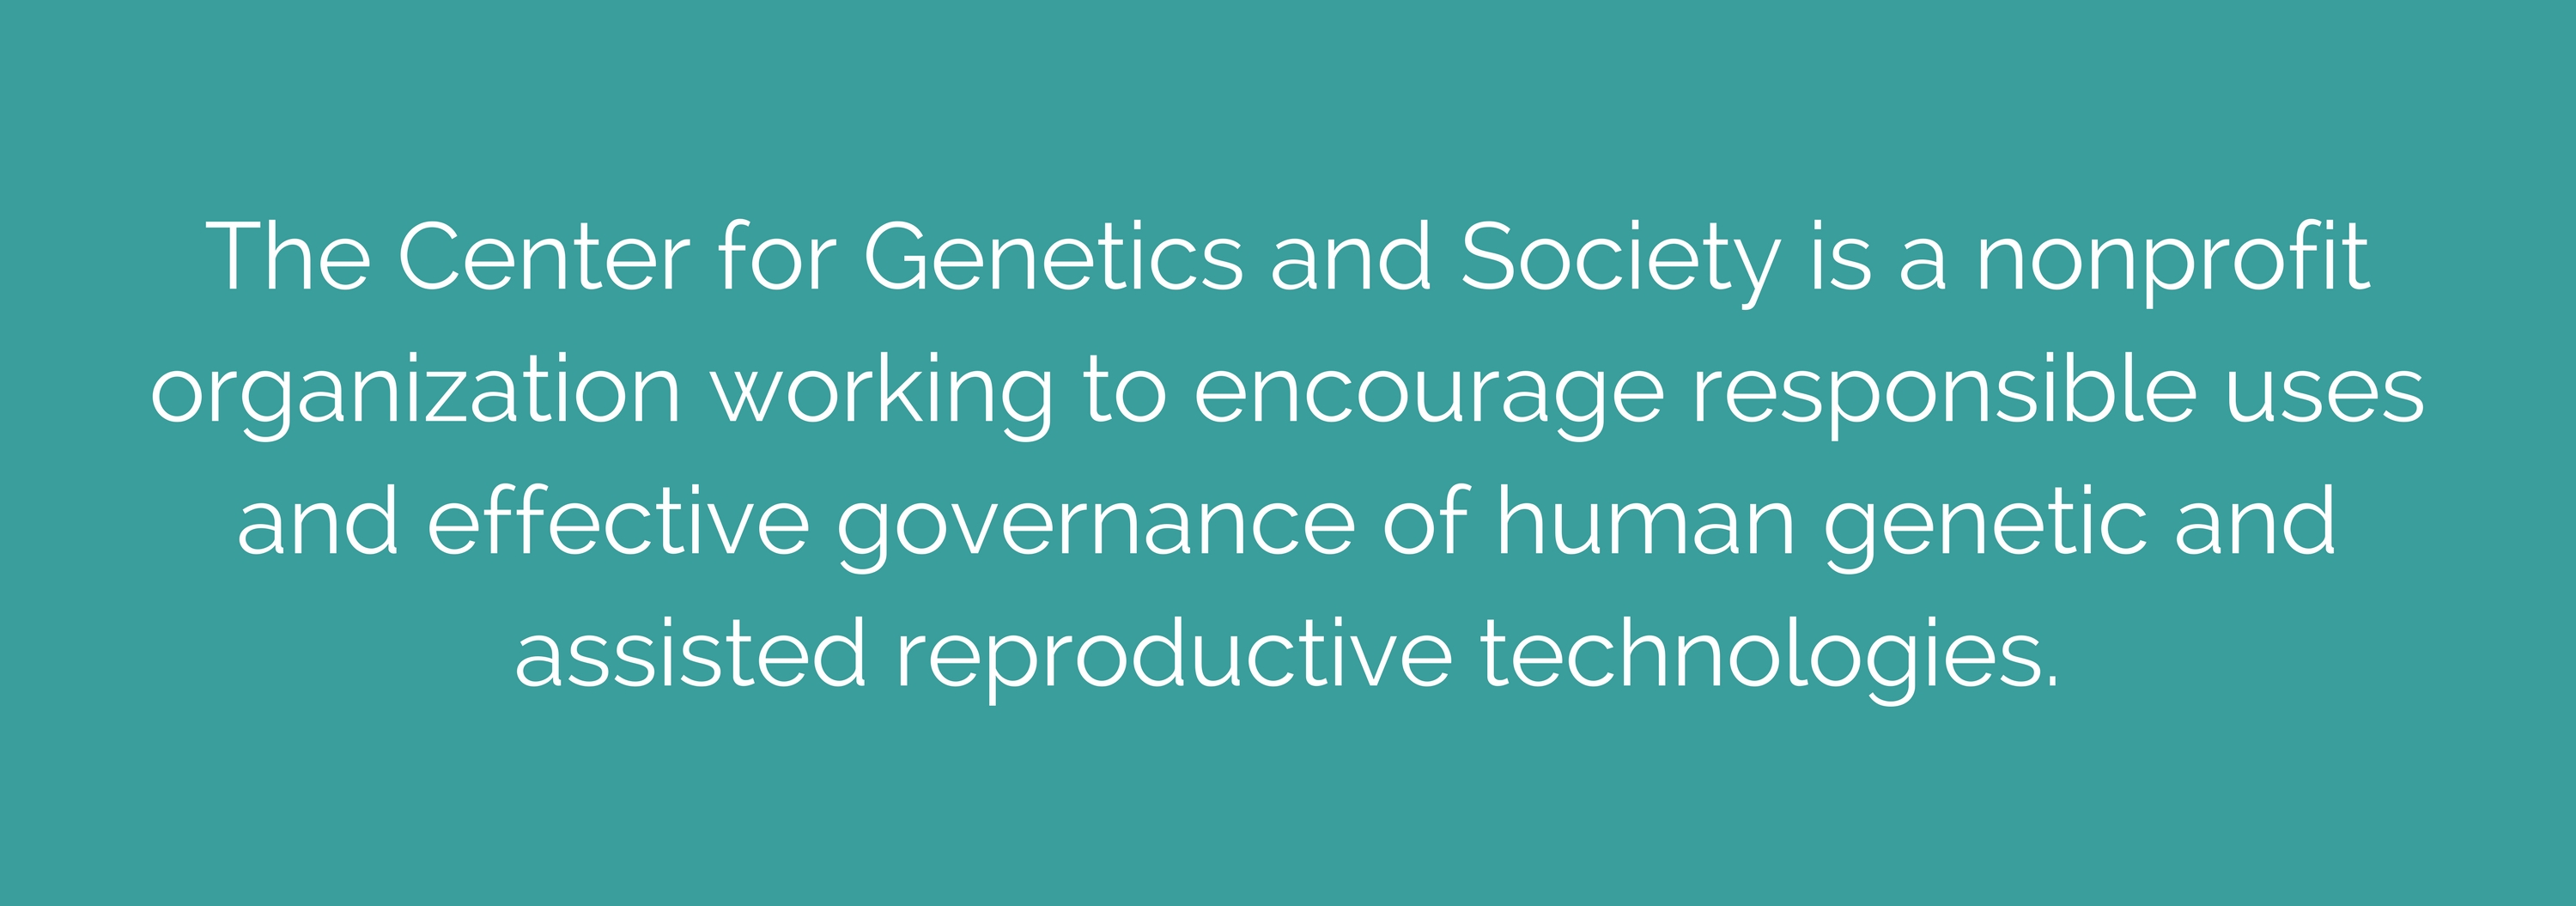 CGS encourages responsible uses and effecitve governance of human genetic and assisted reproductive technologies